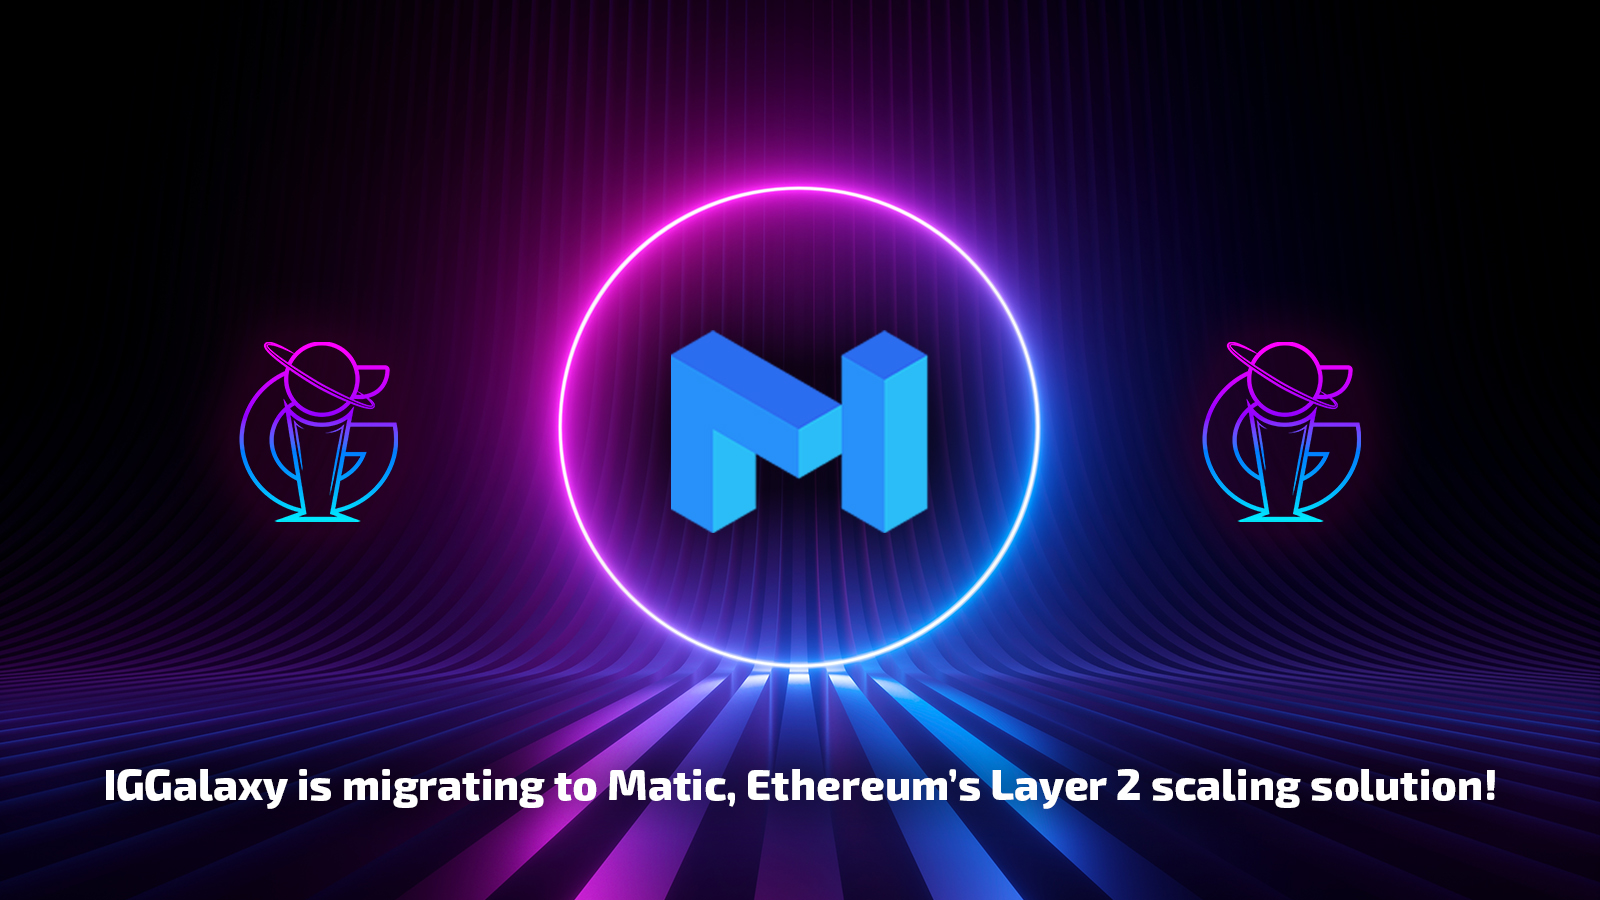 IGGalaxy has migrated to Matic Network!